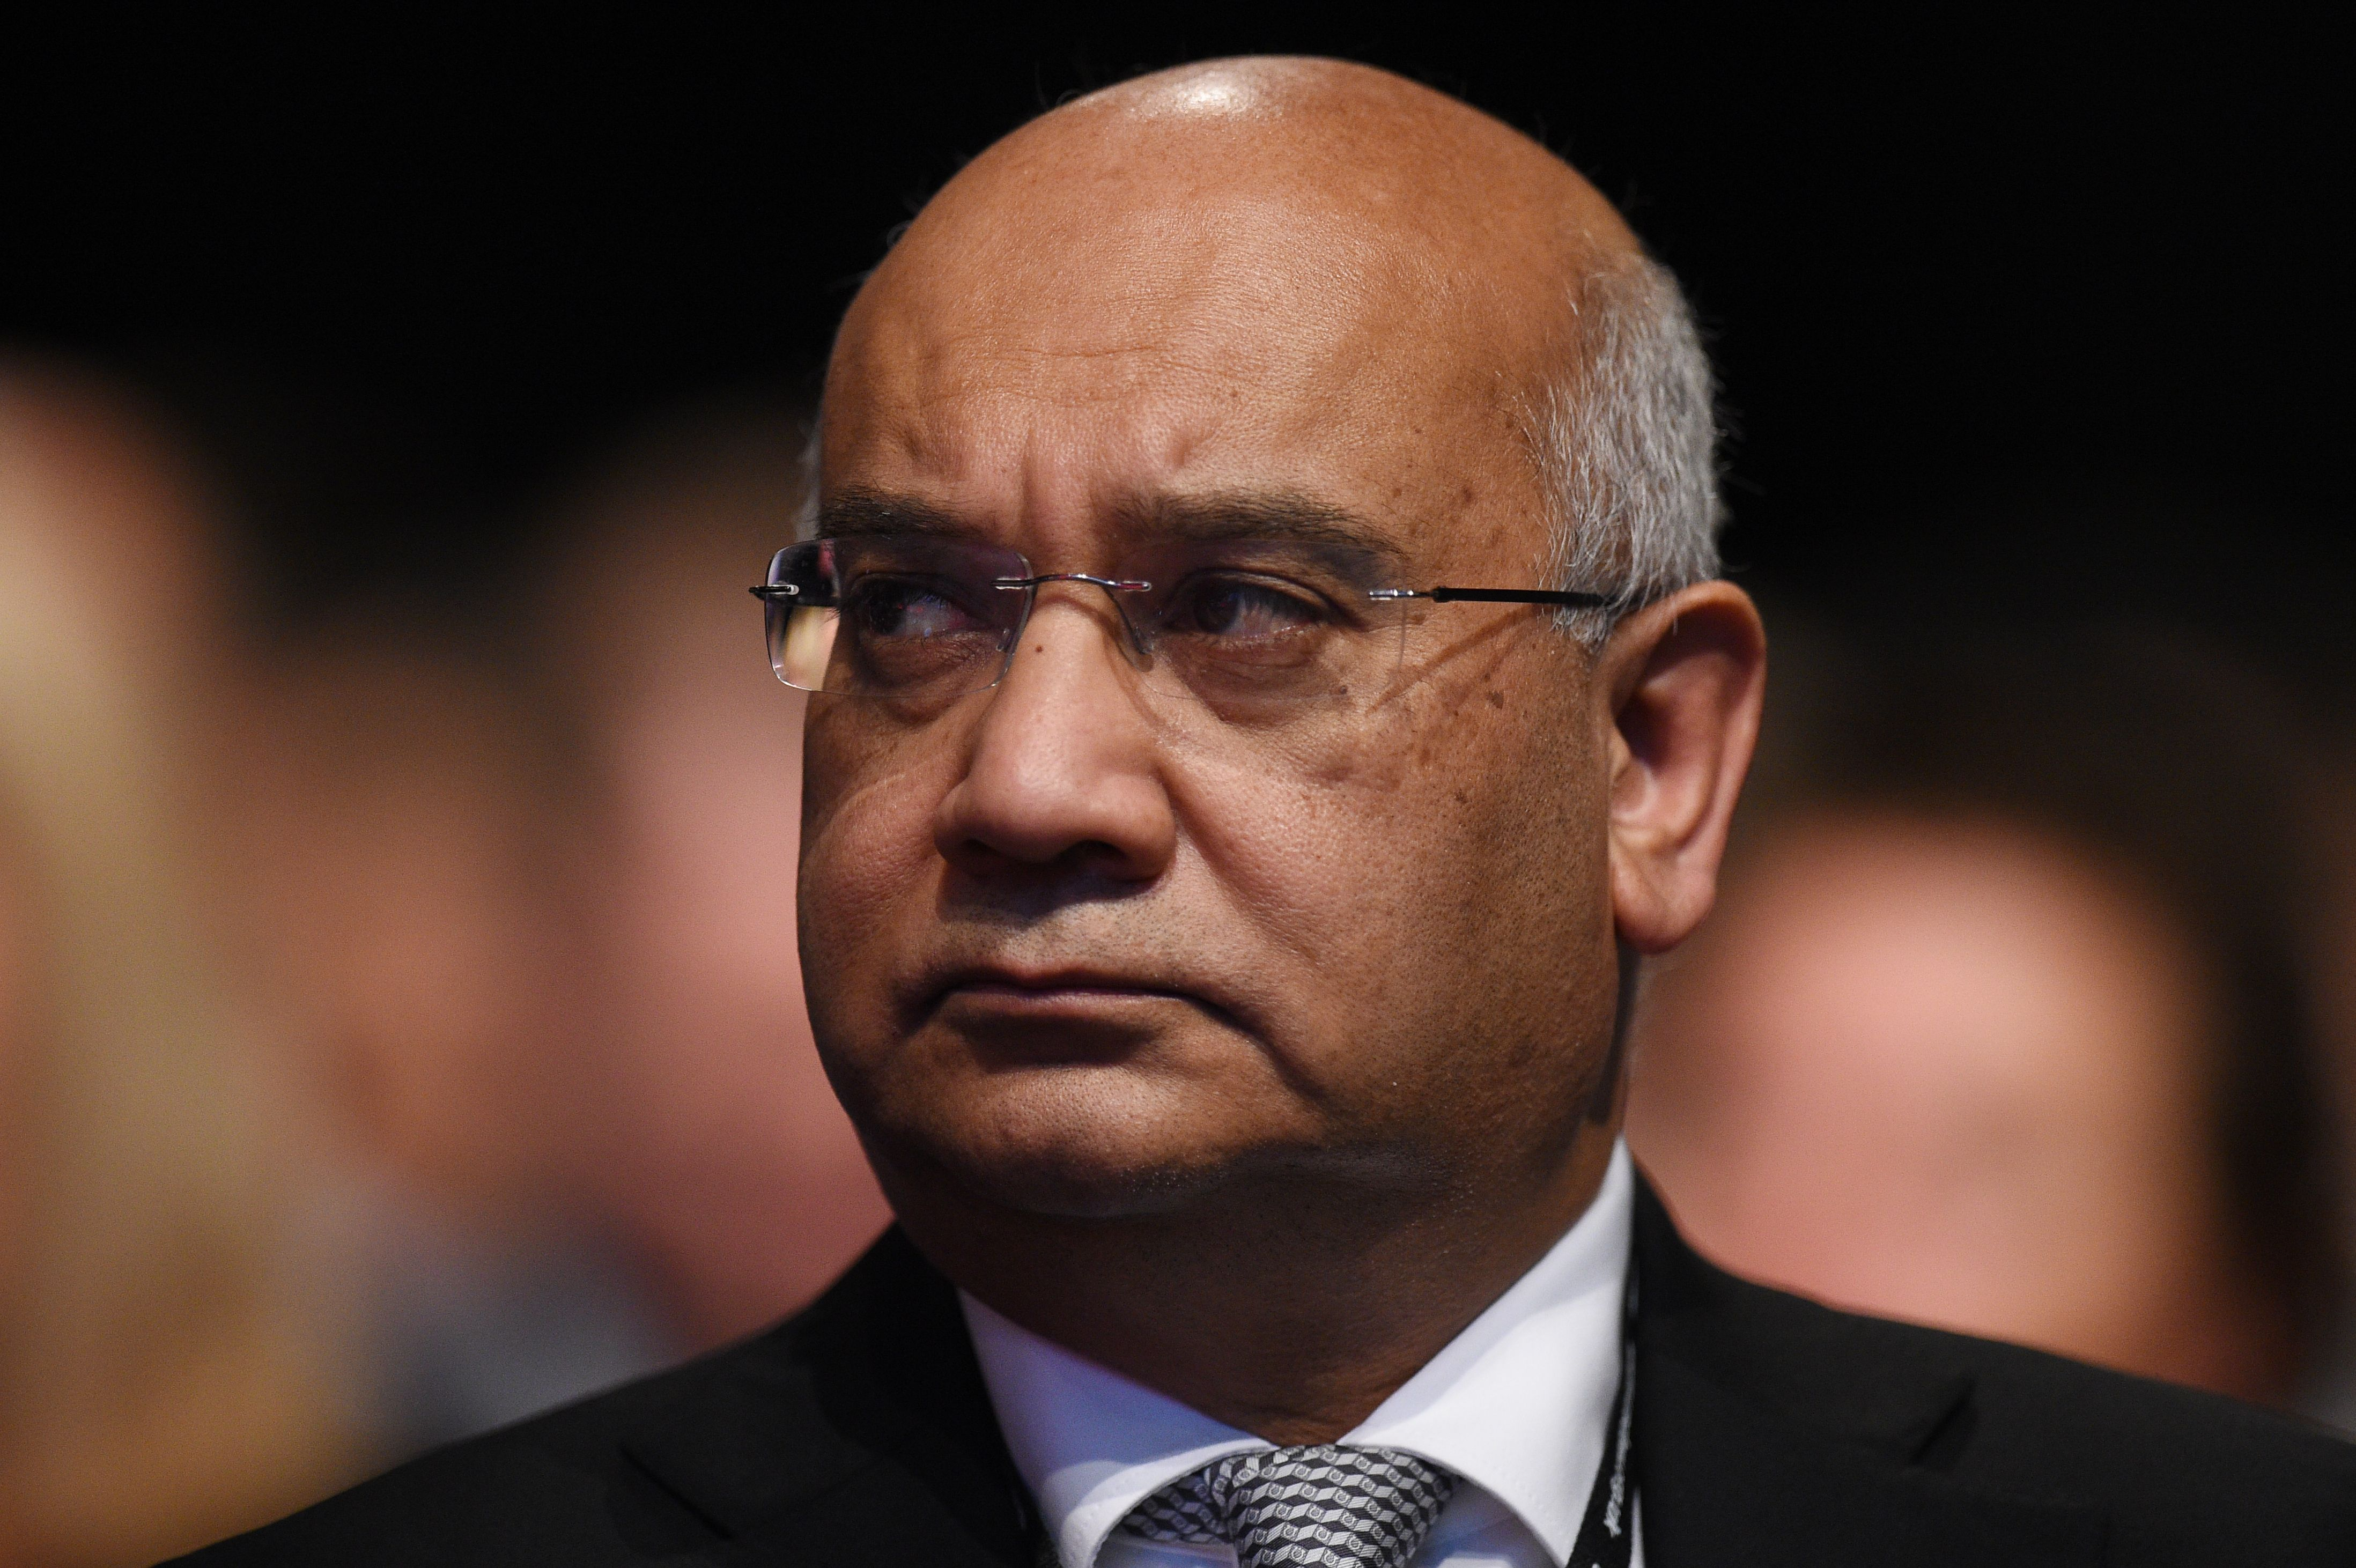 Keith Vaz (OLI SCARFF/AFP/Getty Images)